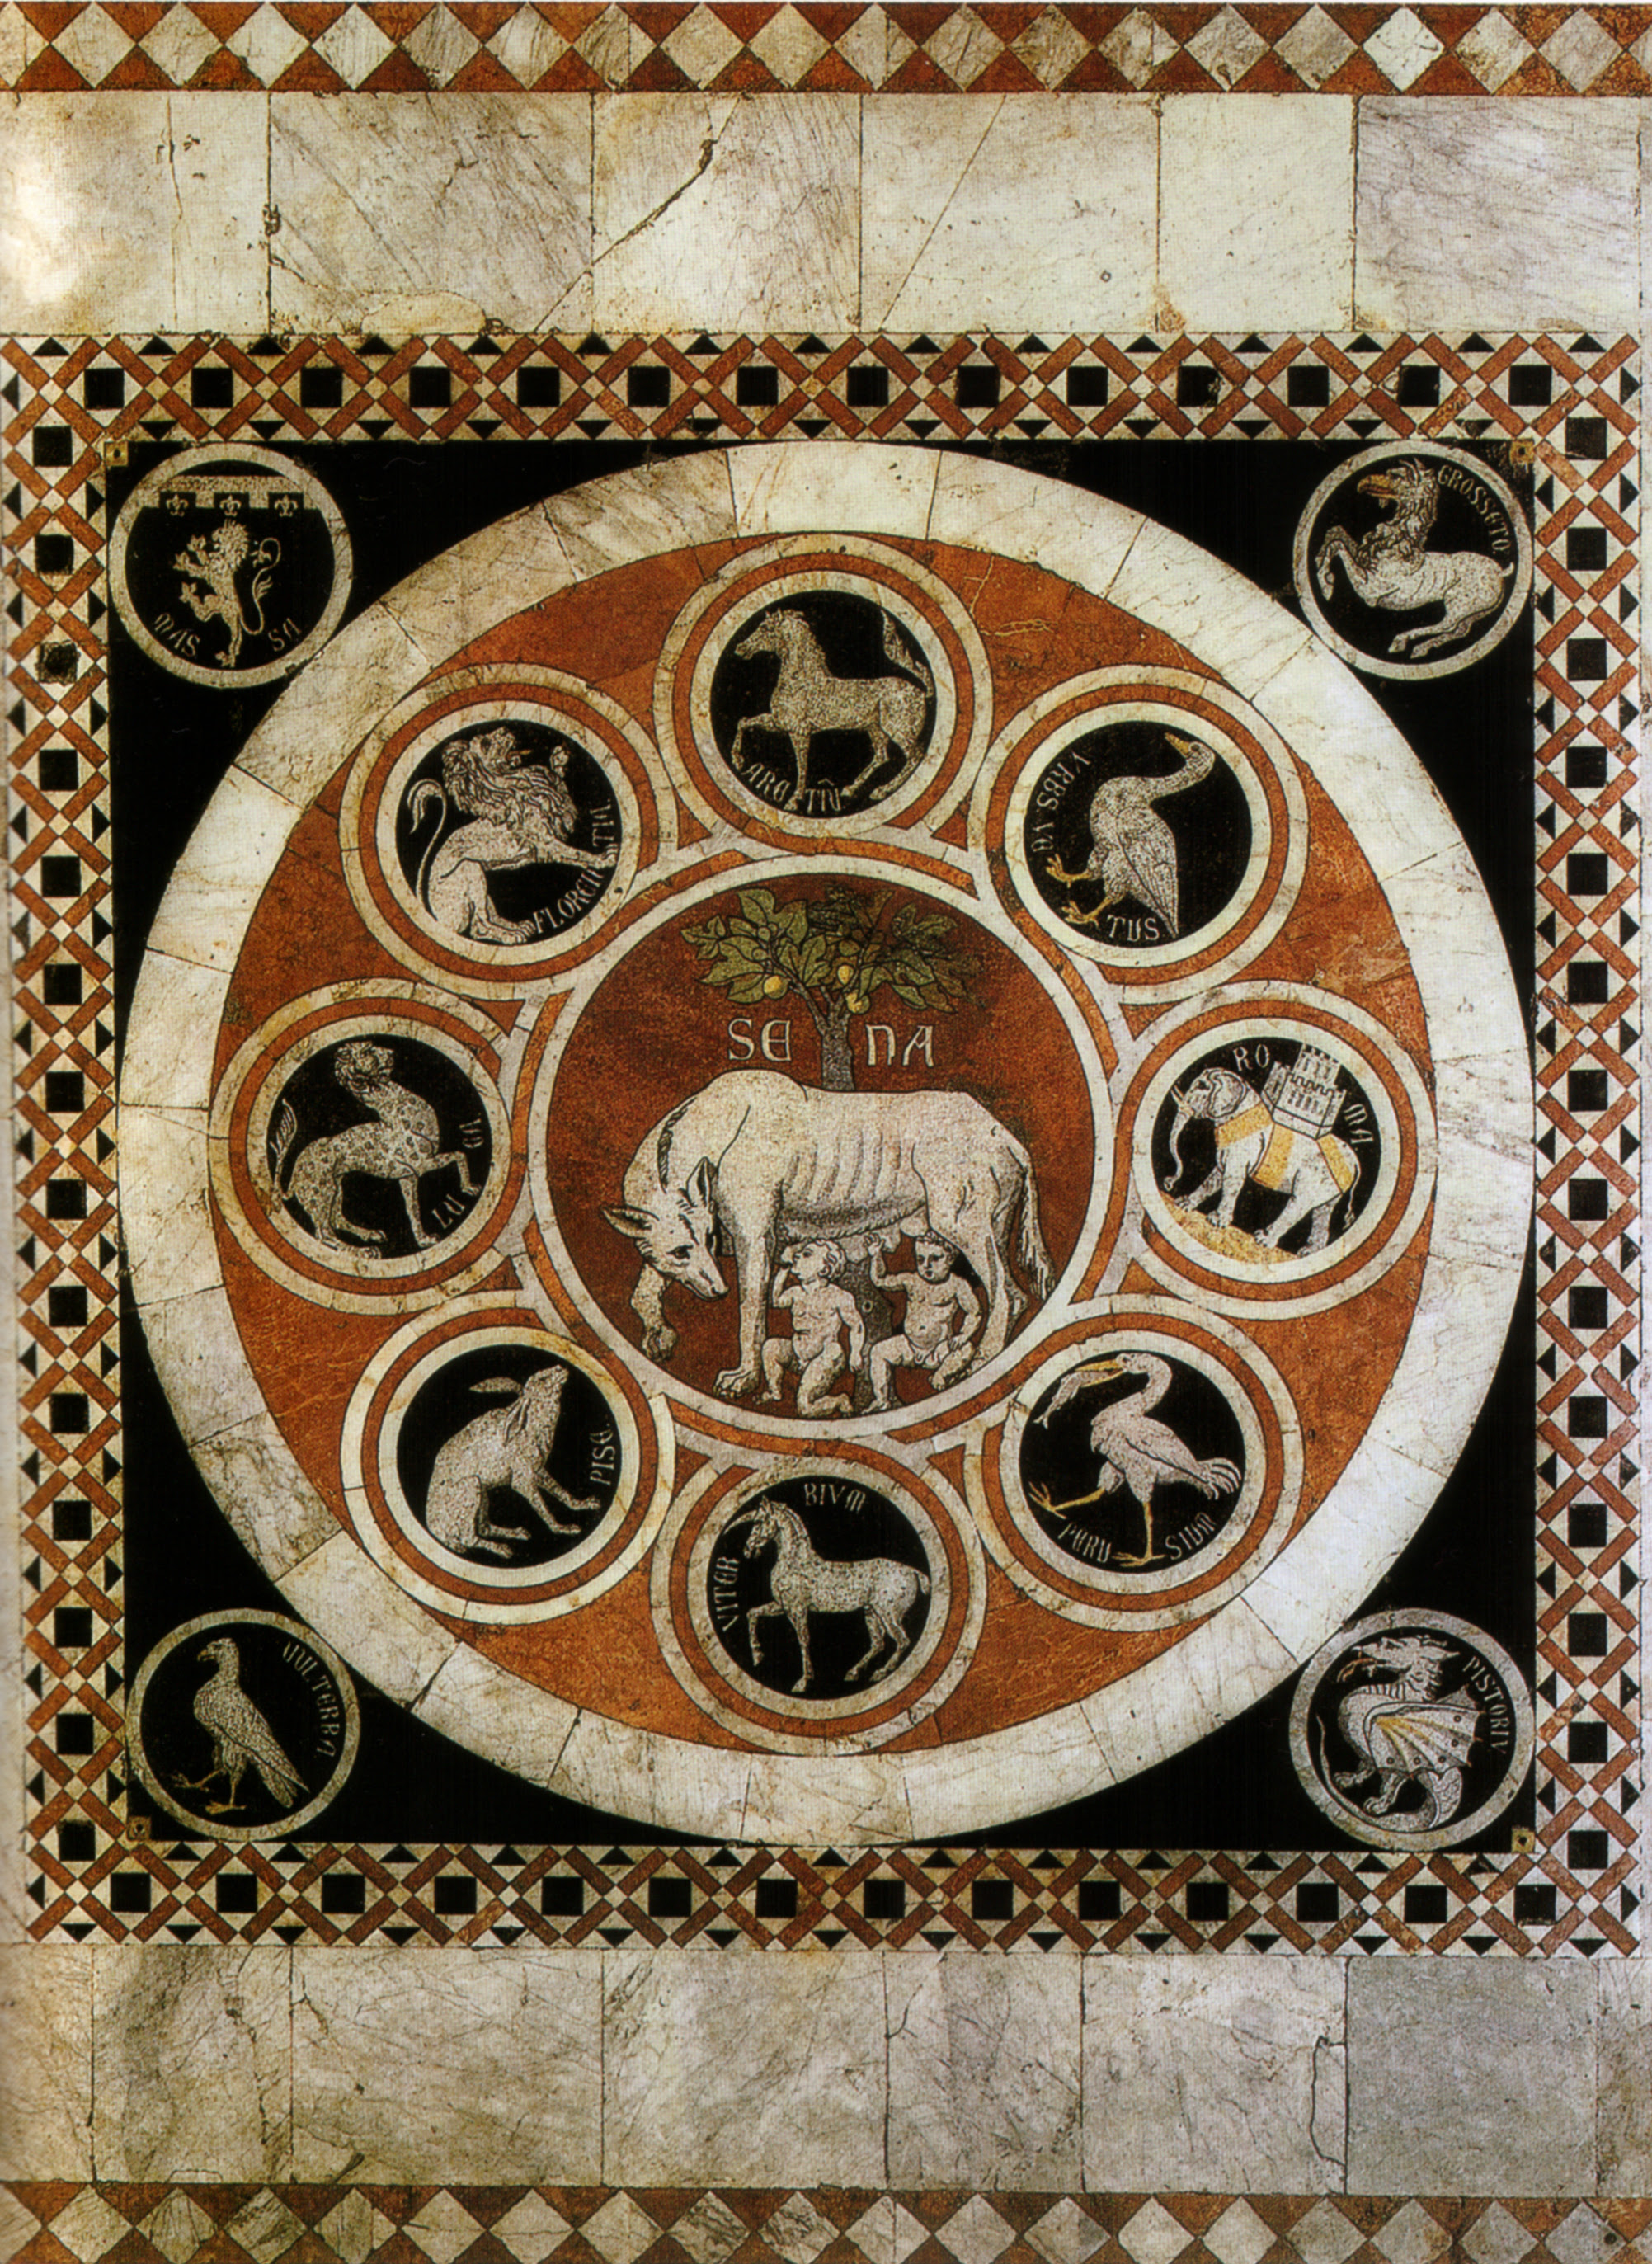 One of the intarsia making up Siena's cathedral floor: The emblem of Siena  (Rome's She-Wolf and Senus and Aschius)